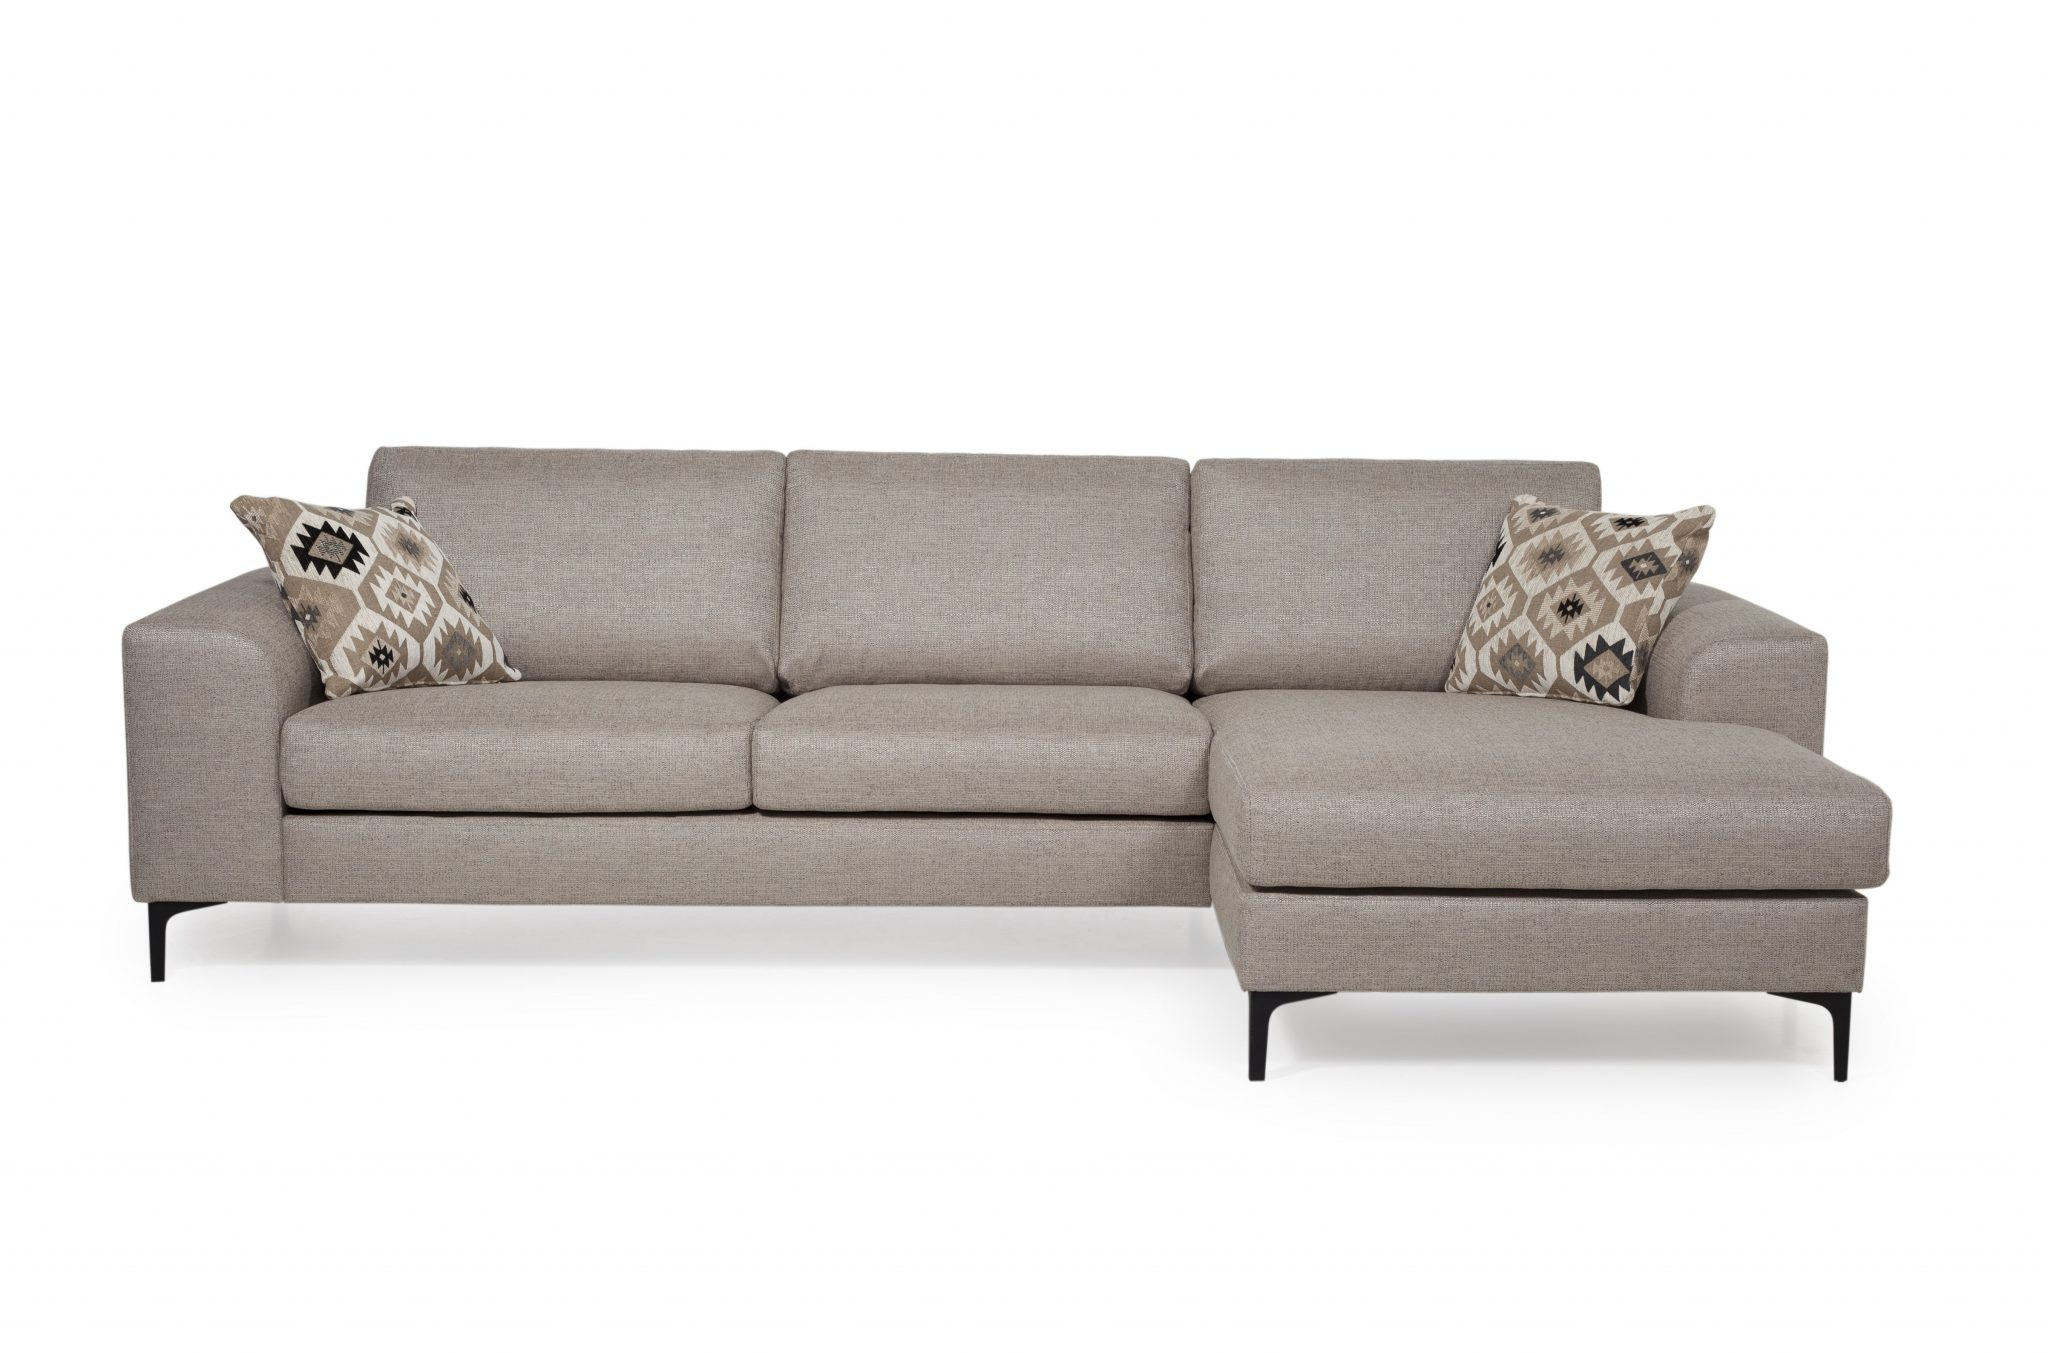 Scandinavian Sofa | L Shape Sofa Scandinavian Furniture Home ...